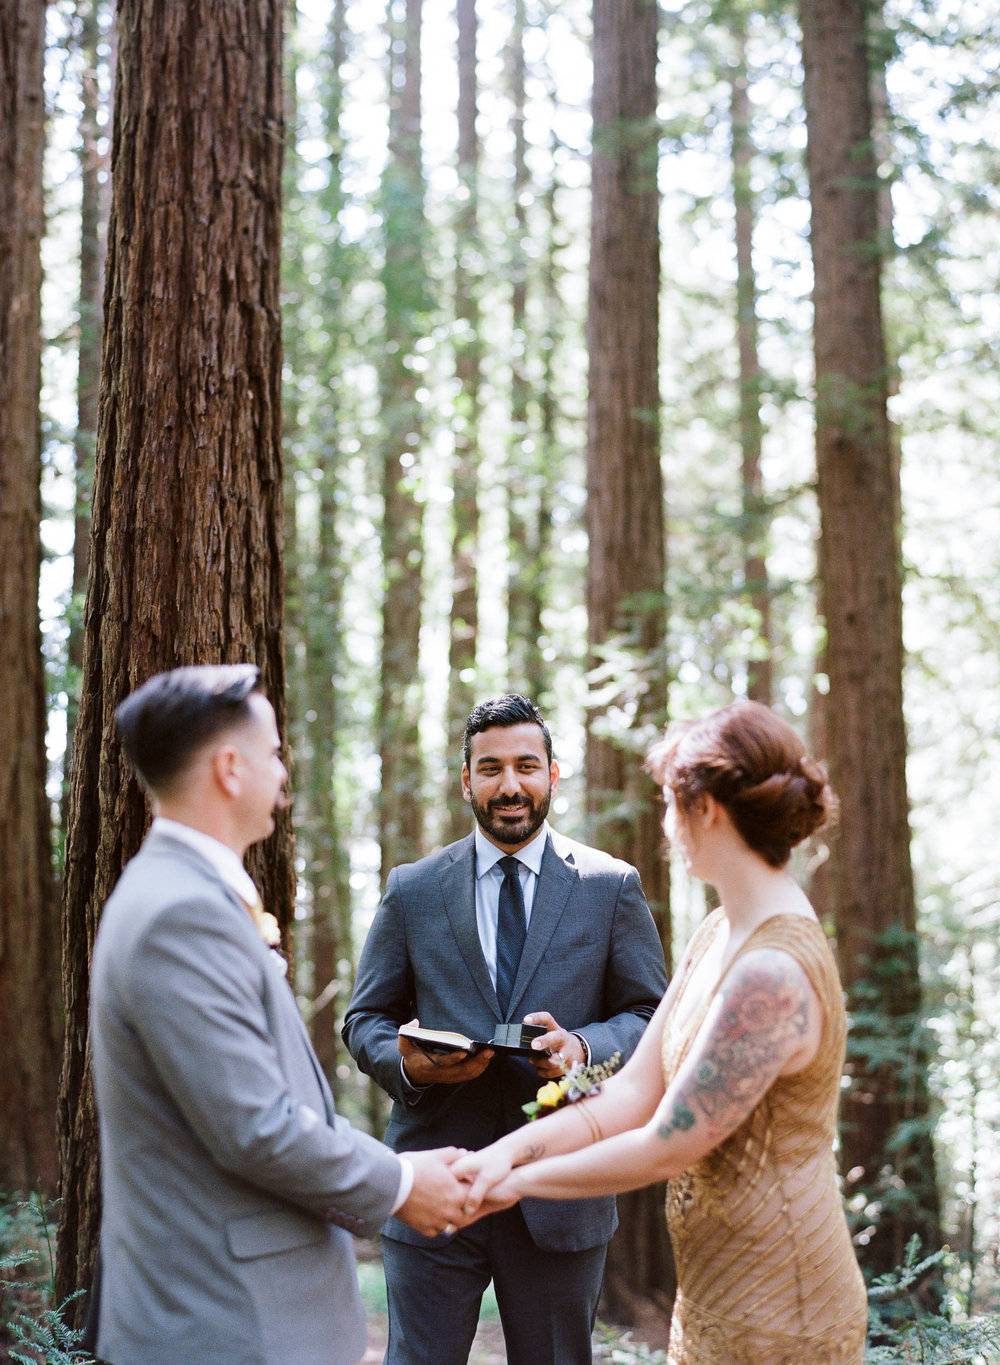 050418_J+S_Oakland Redwoods Elopement_Buena Lane Photography_P4_016.jpg